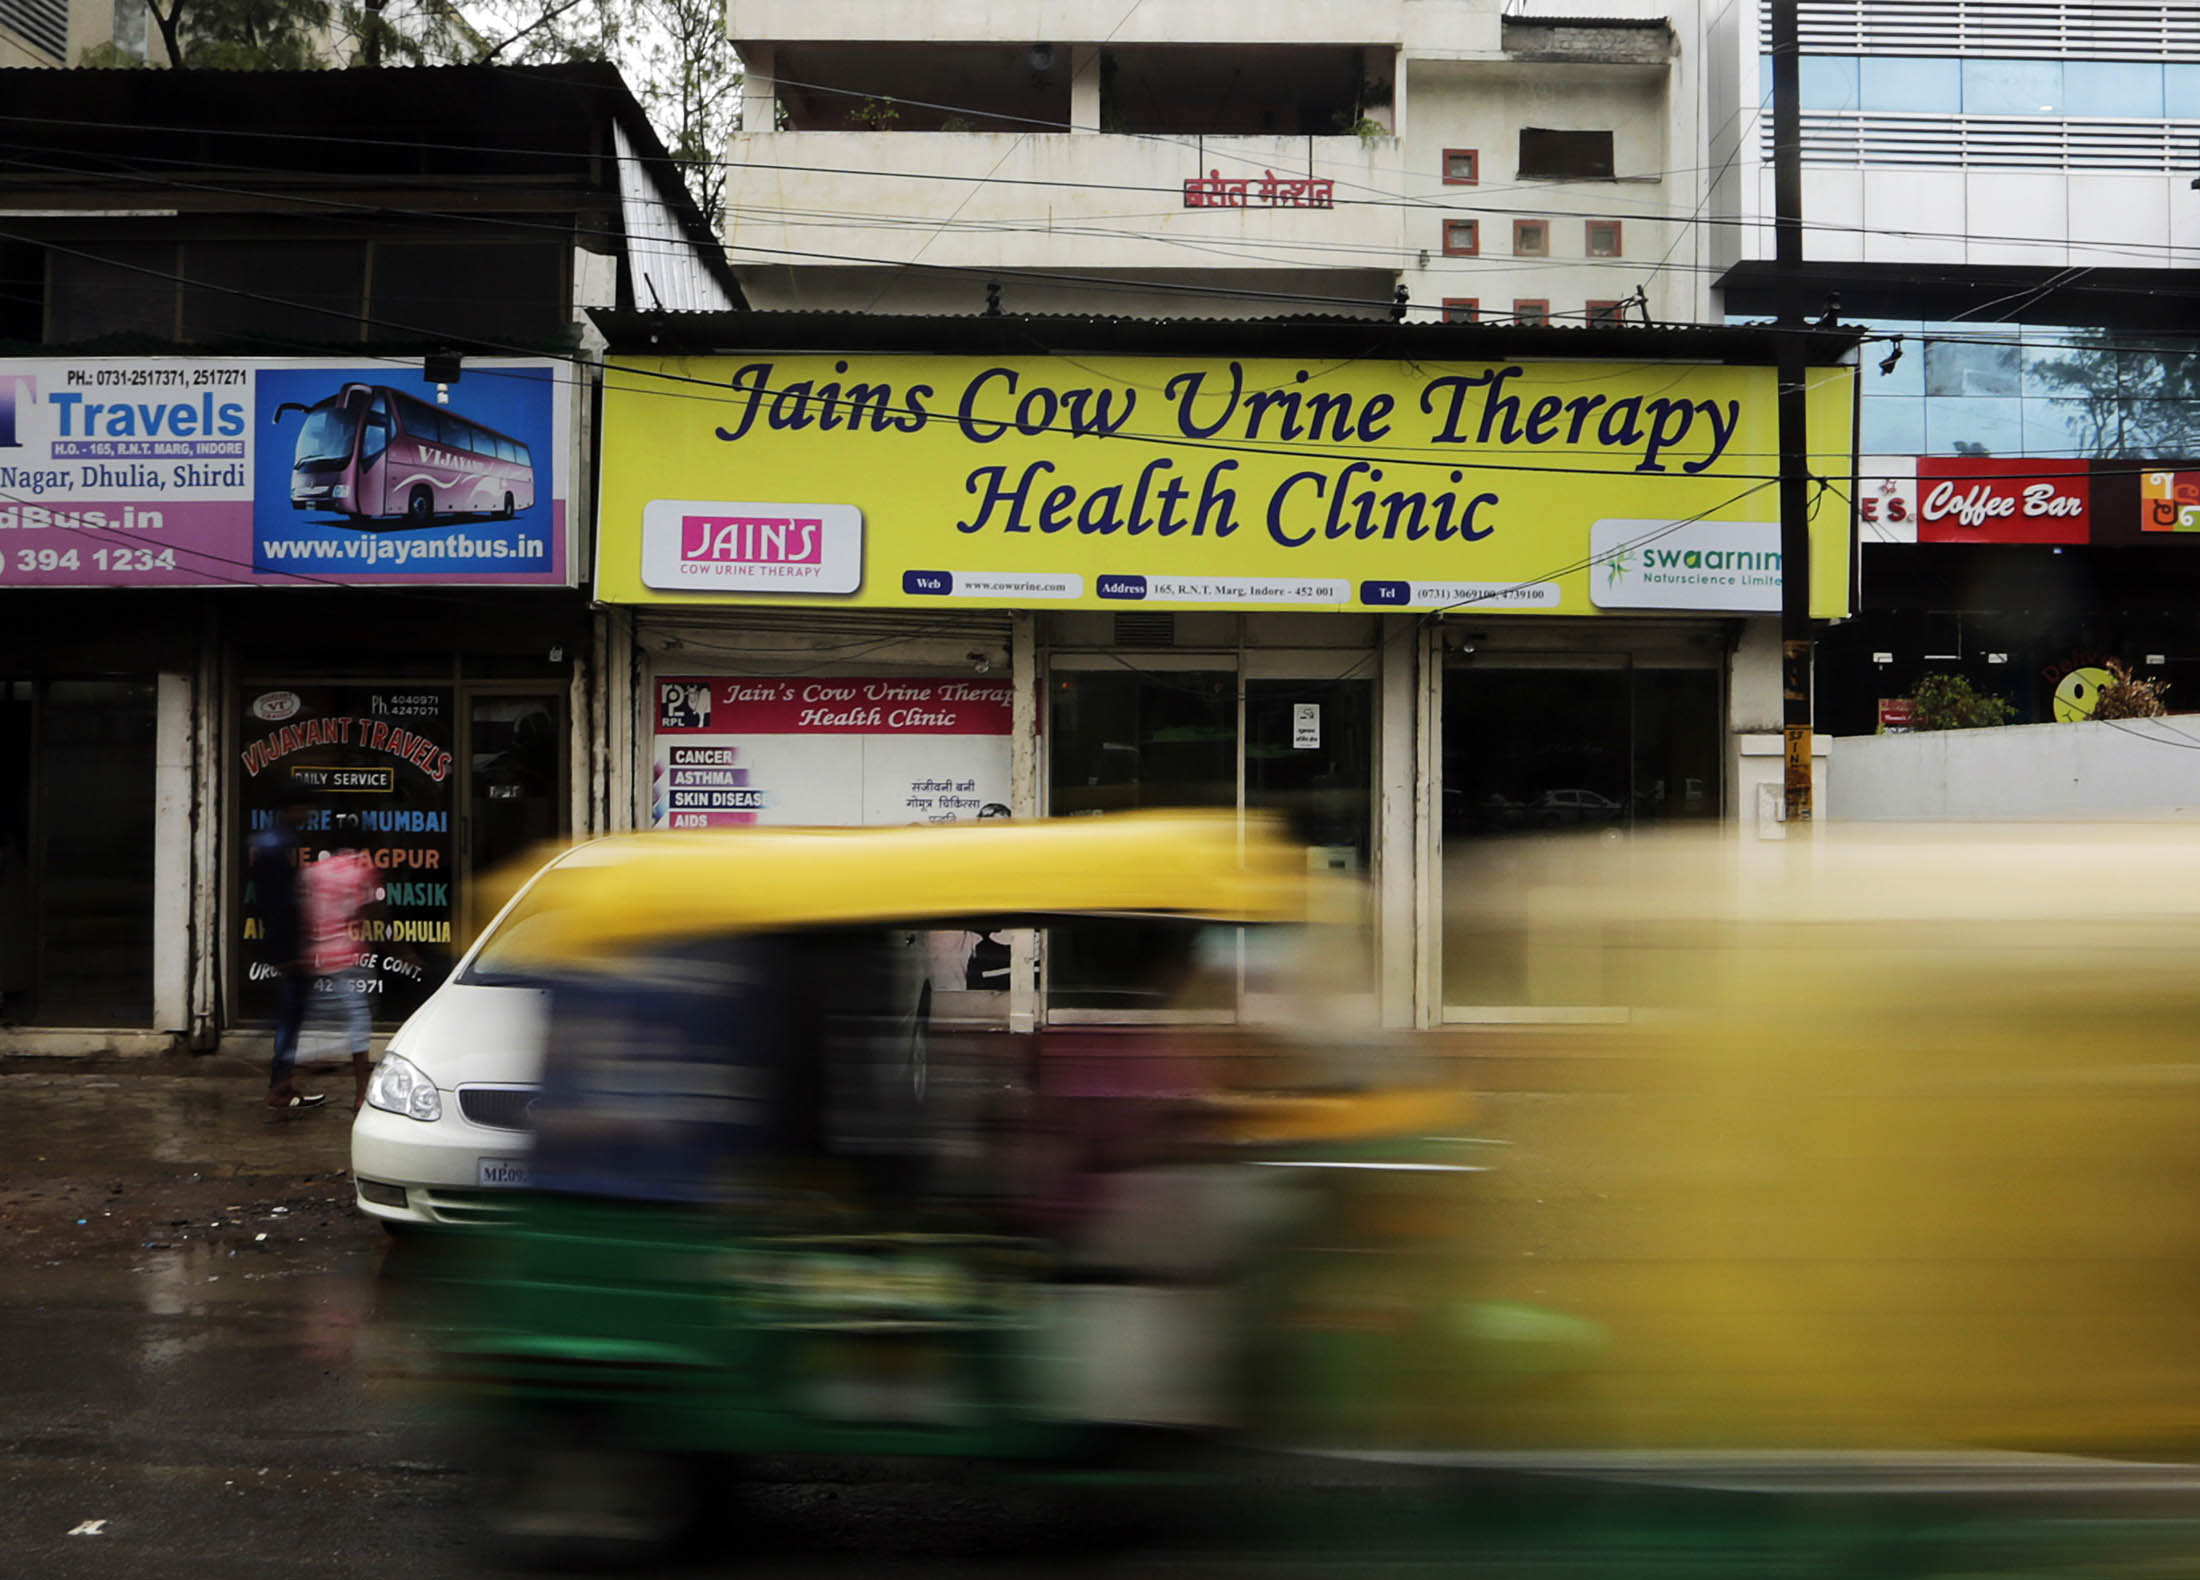 Cow Urine Therapy Health Clinic